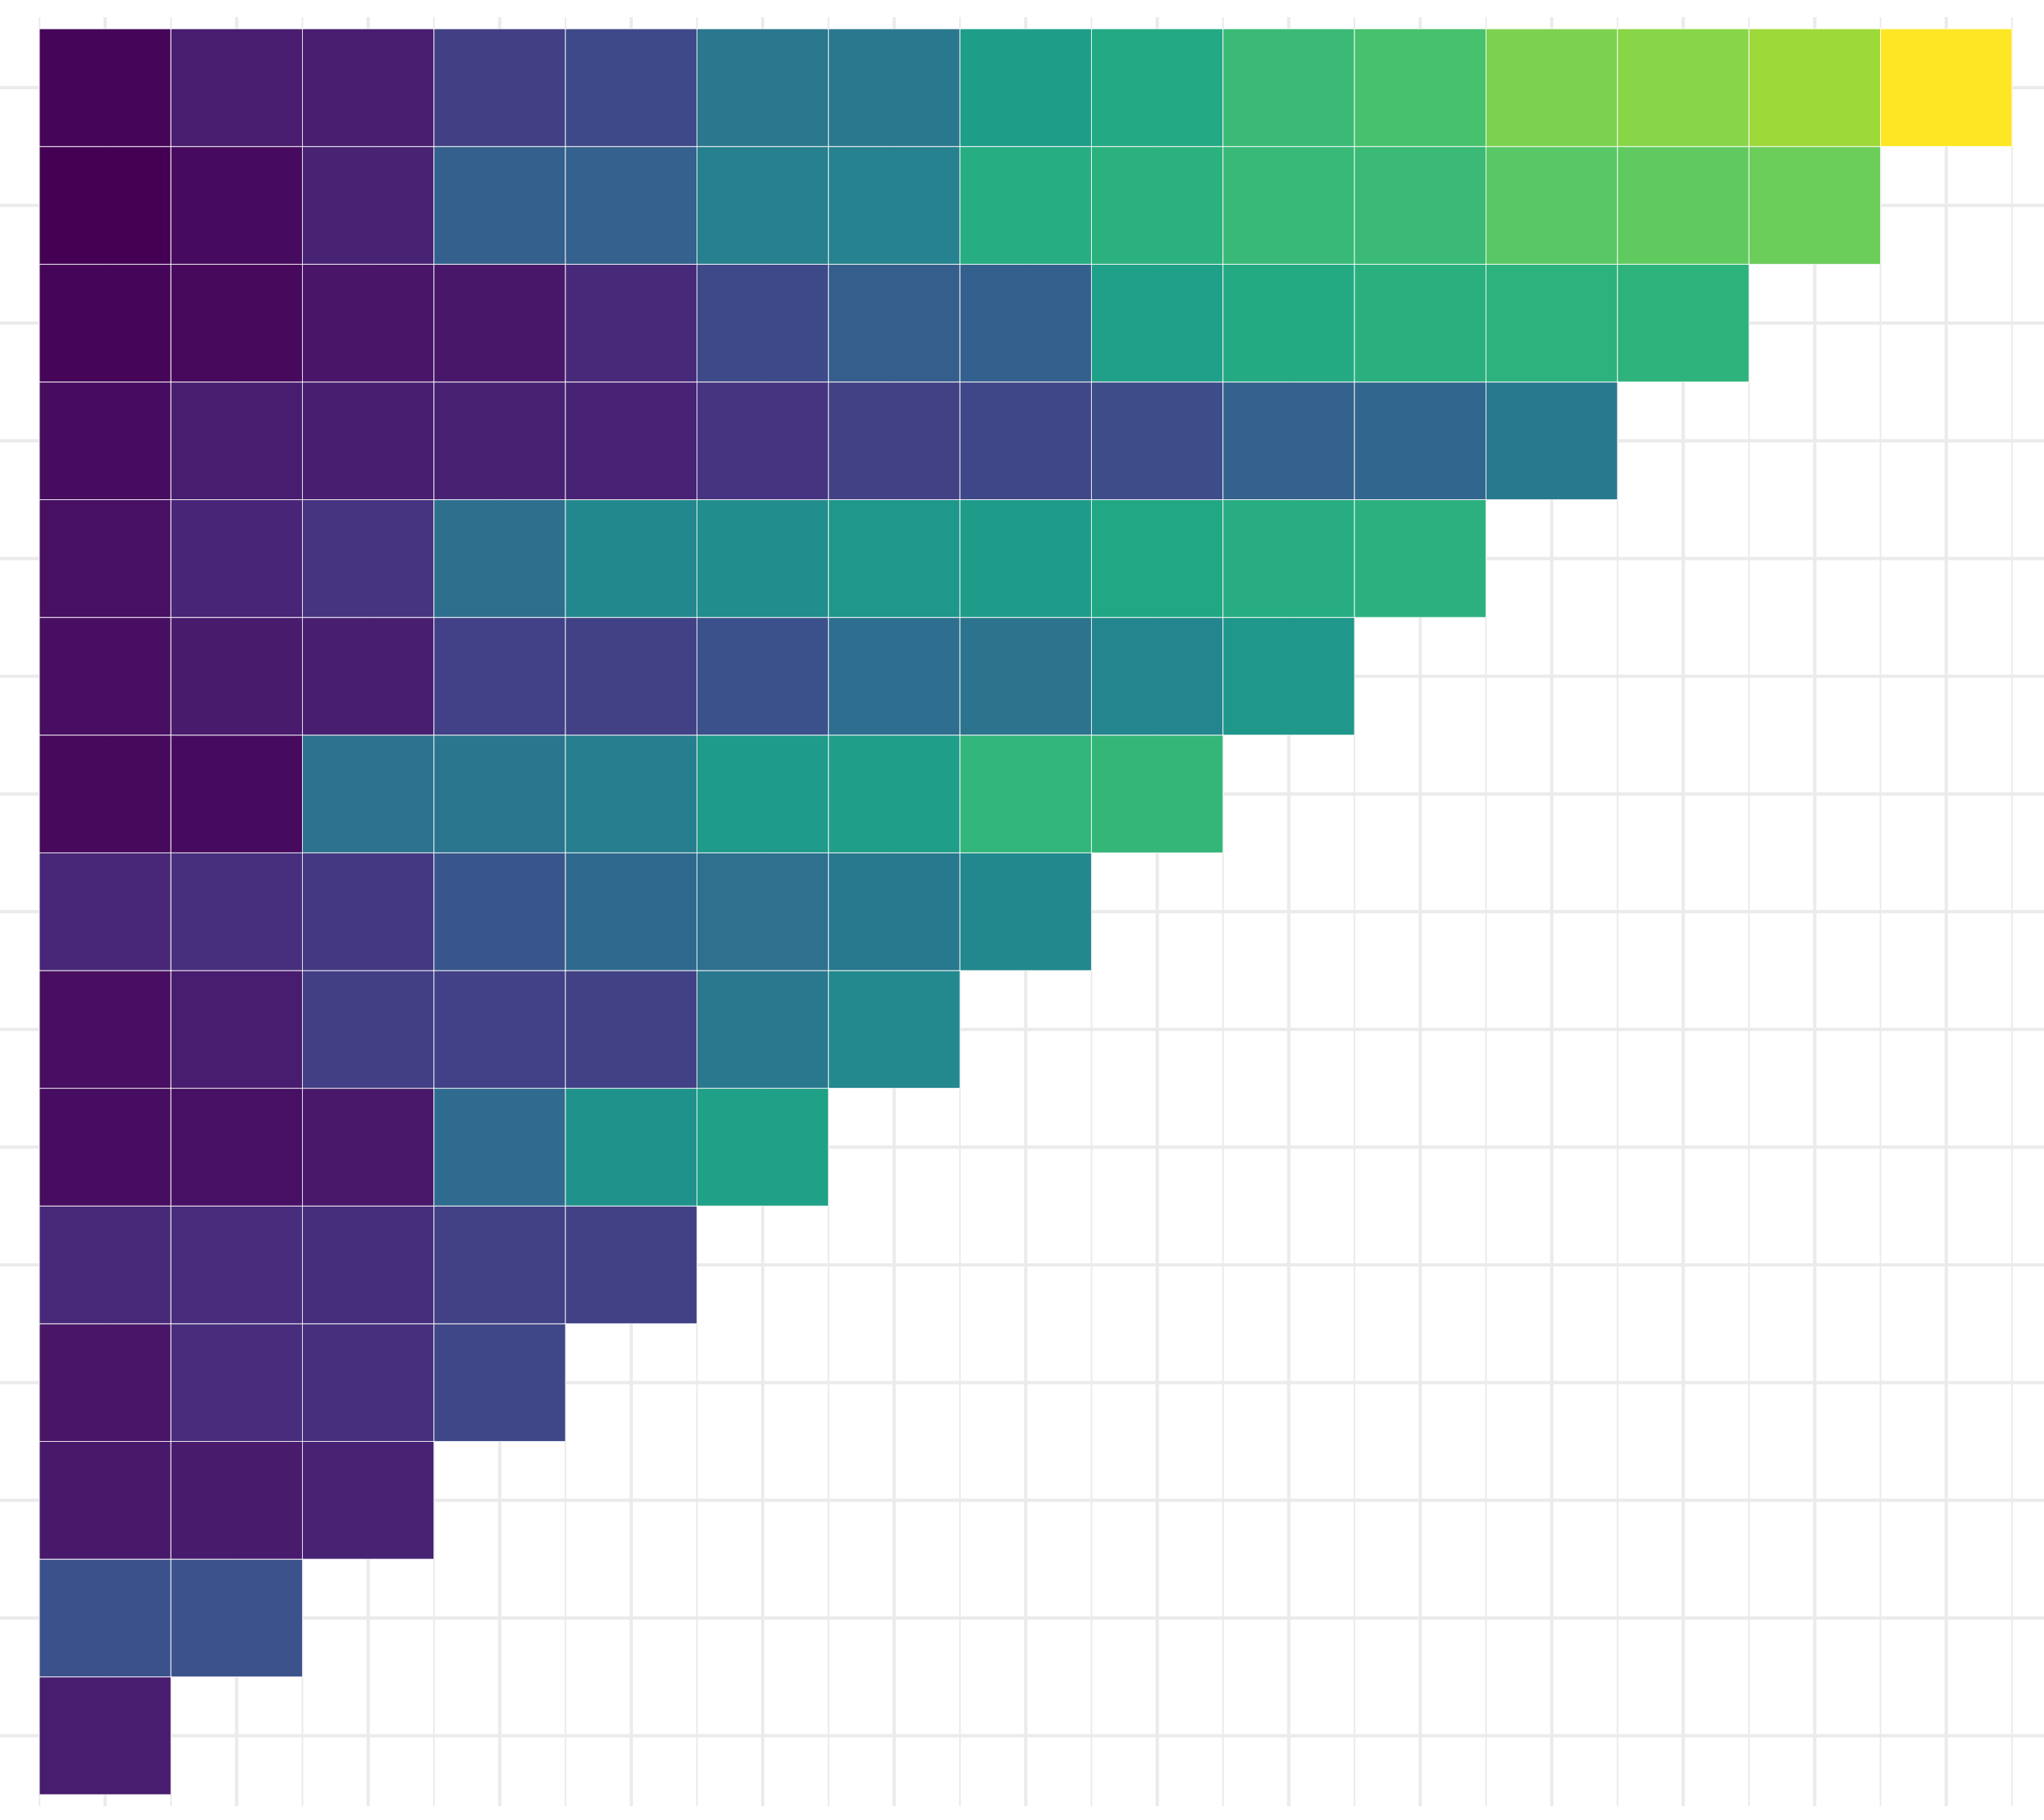 The Viridis palette for R – Thinking on Data